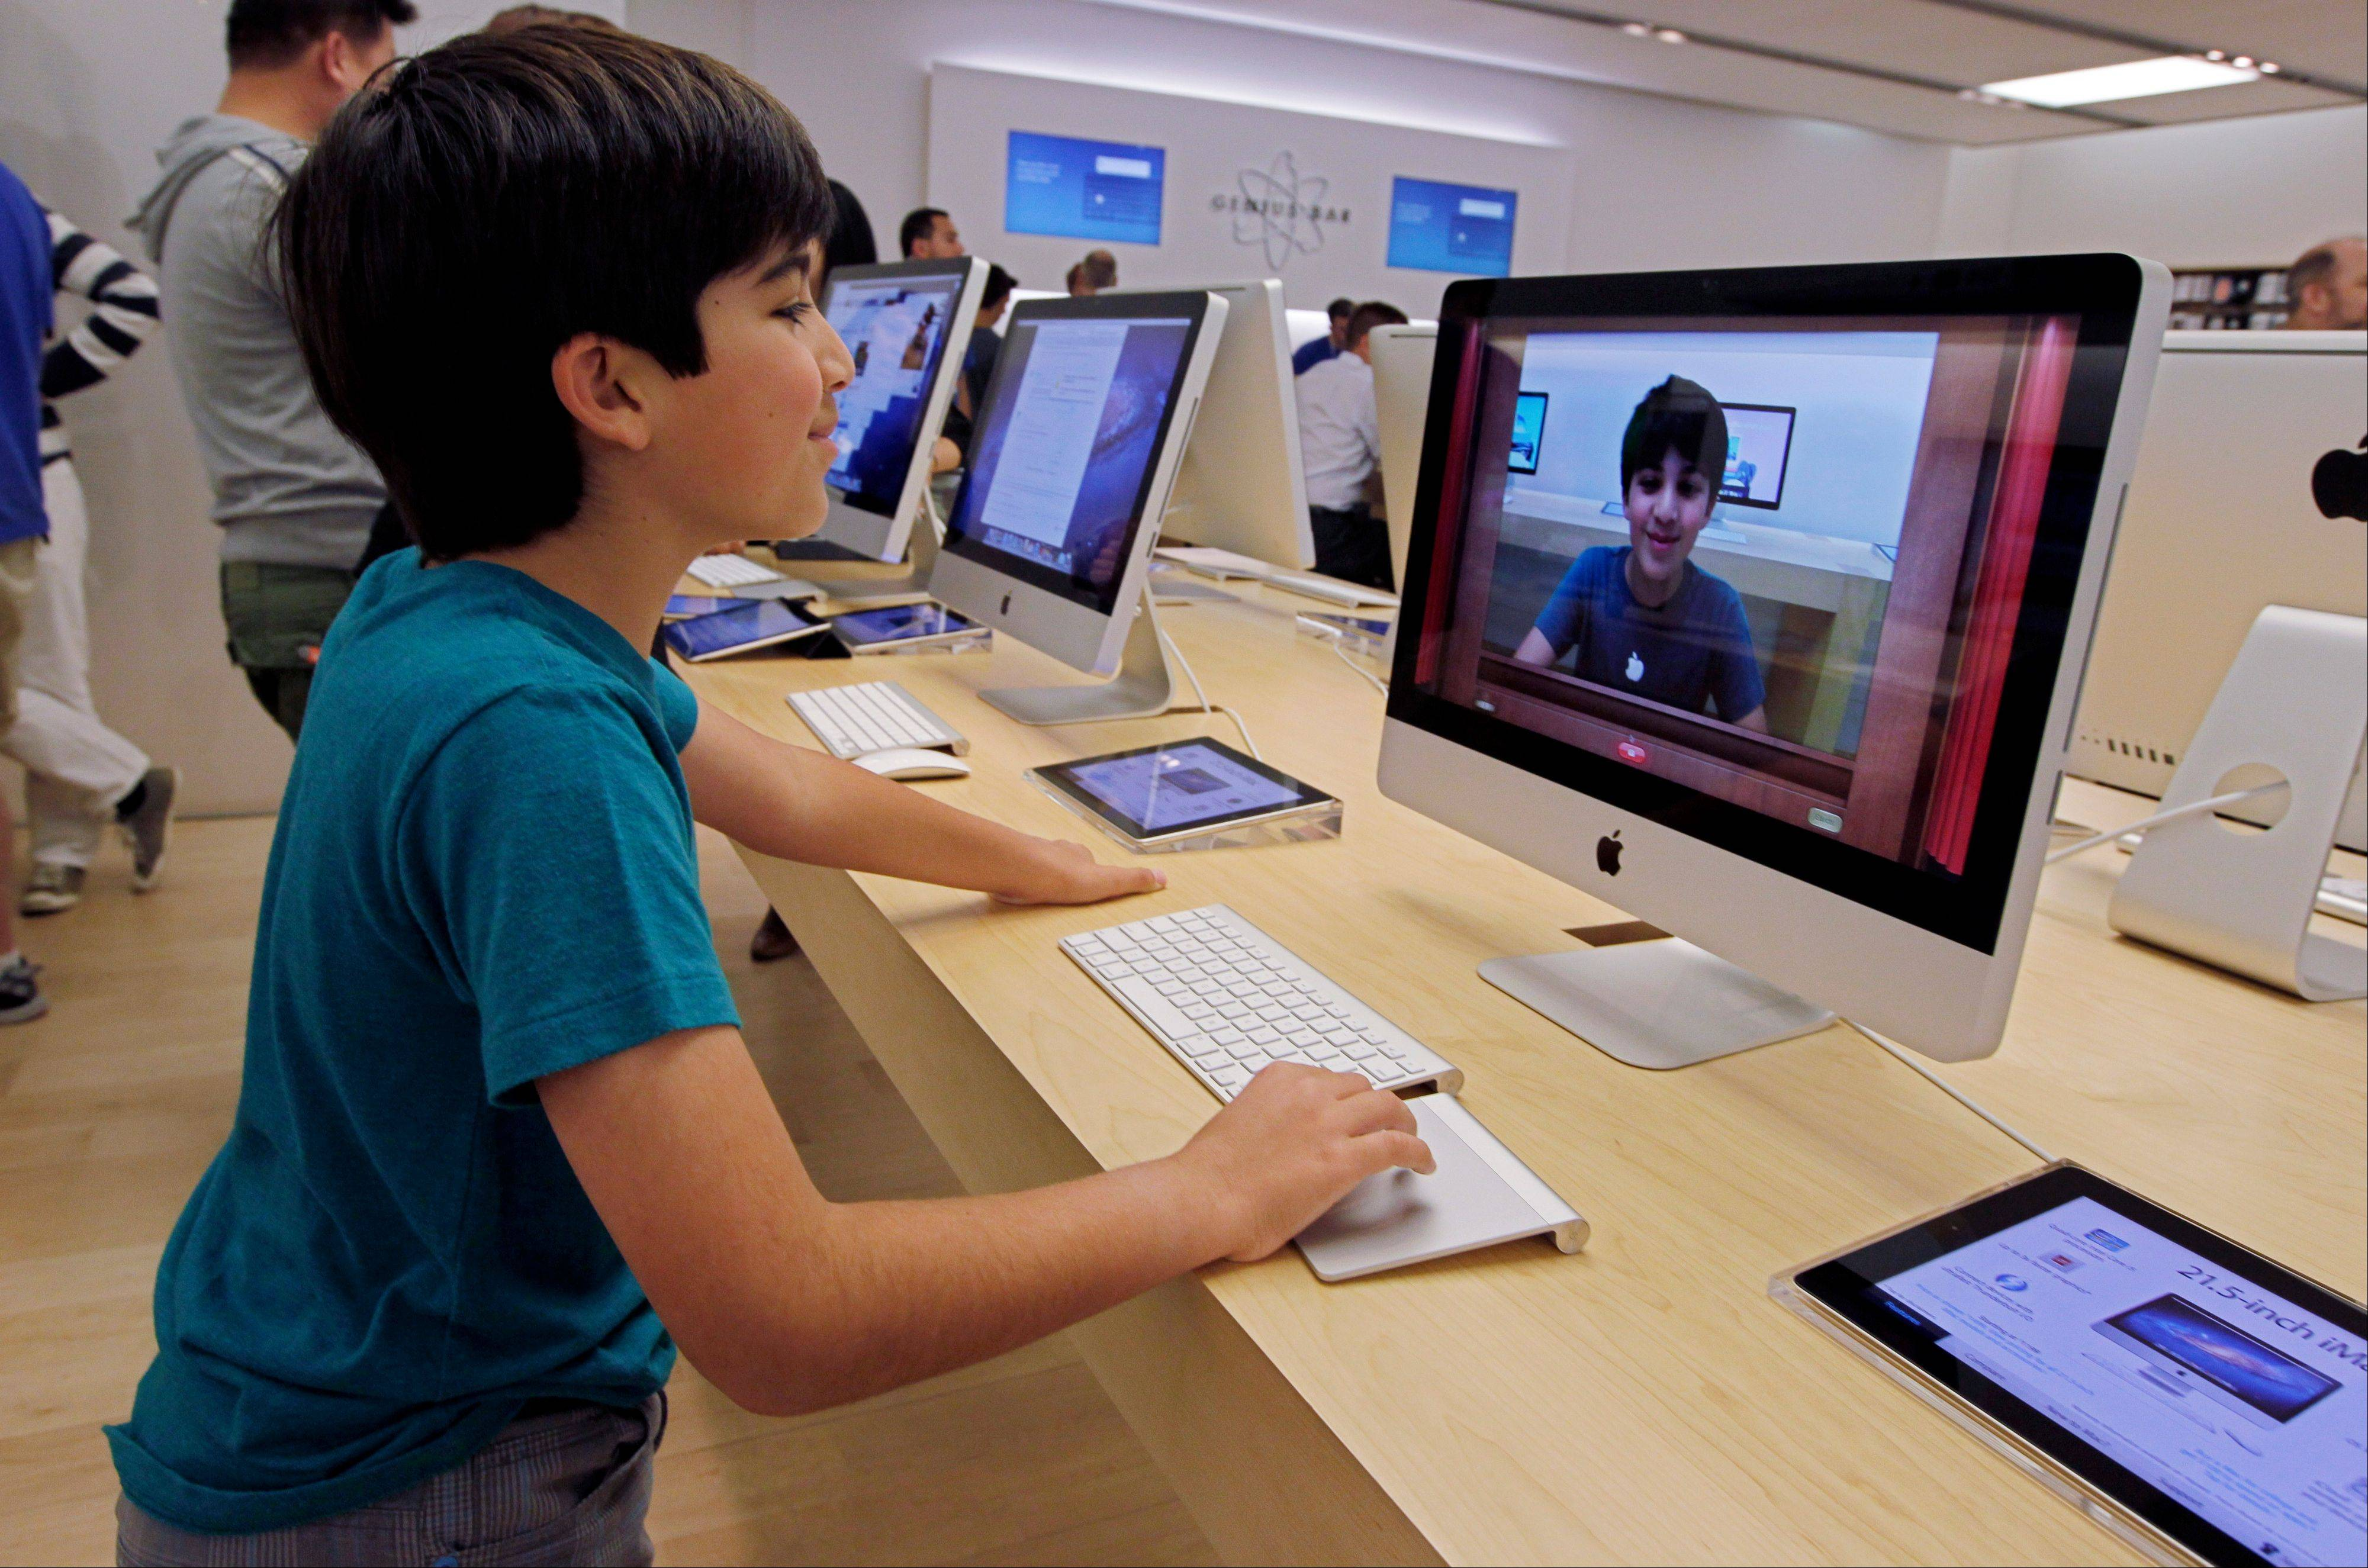 Apple customer Shayan Hooshmand, 11, uses PhotoBooth on a 21.5-inch iMac at an Apple store in Palo Alto, Calif.